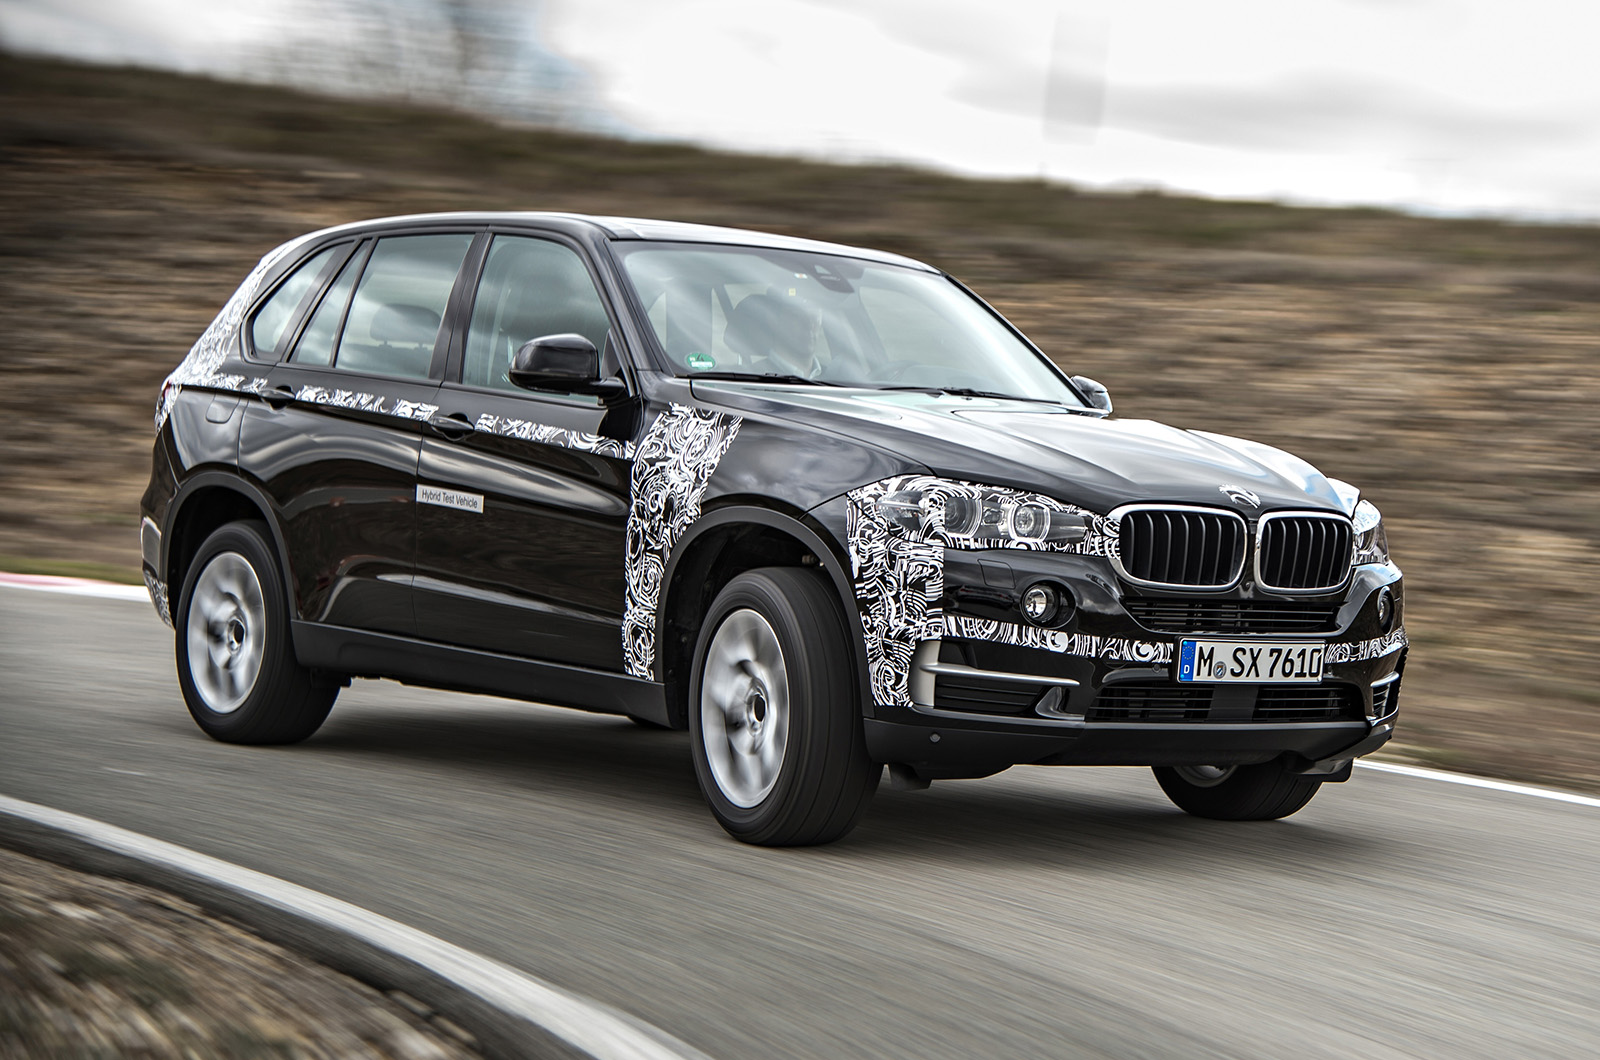 bmw x5 edrive prototype first drive review review autocar. Black Bedroom Furniture Sets. Home Design Ideas